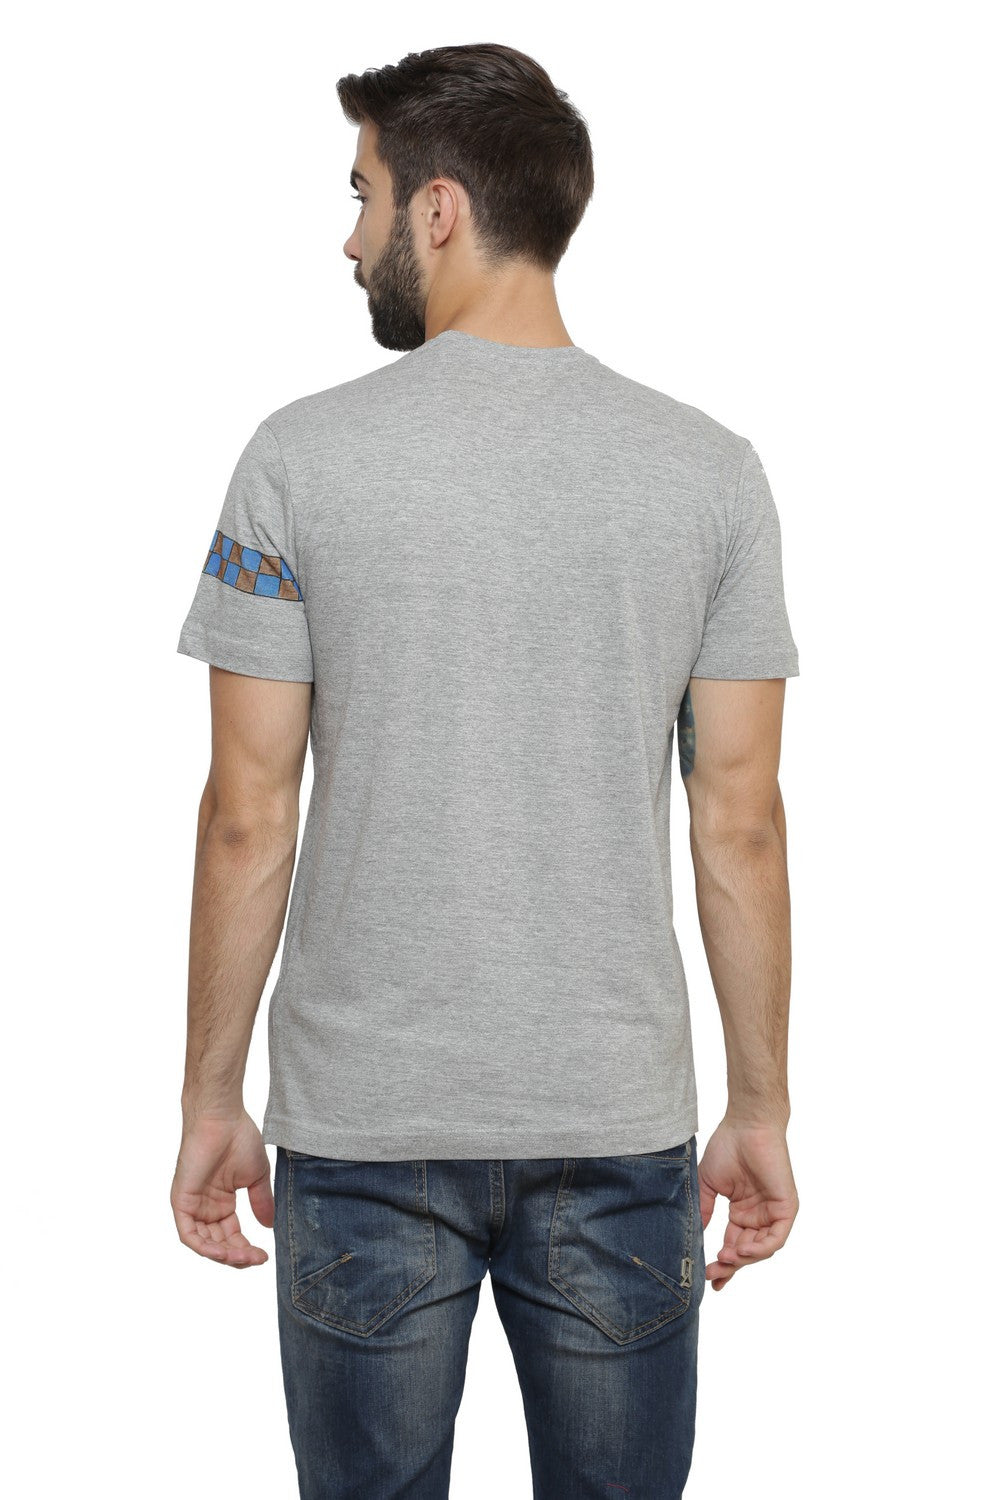 Hand-painted Krishna Elements Grey T-shirt - Rang Rage  - 2